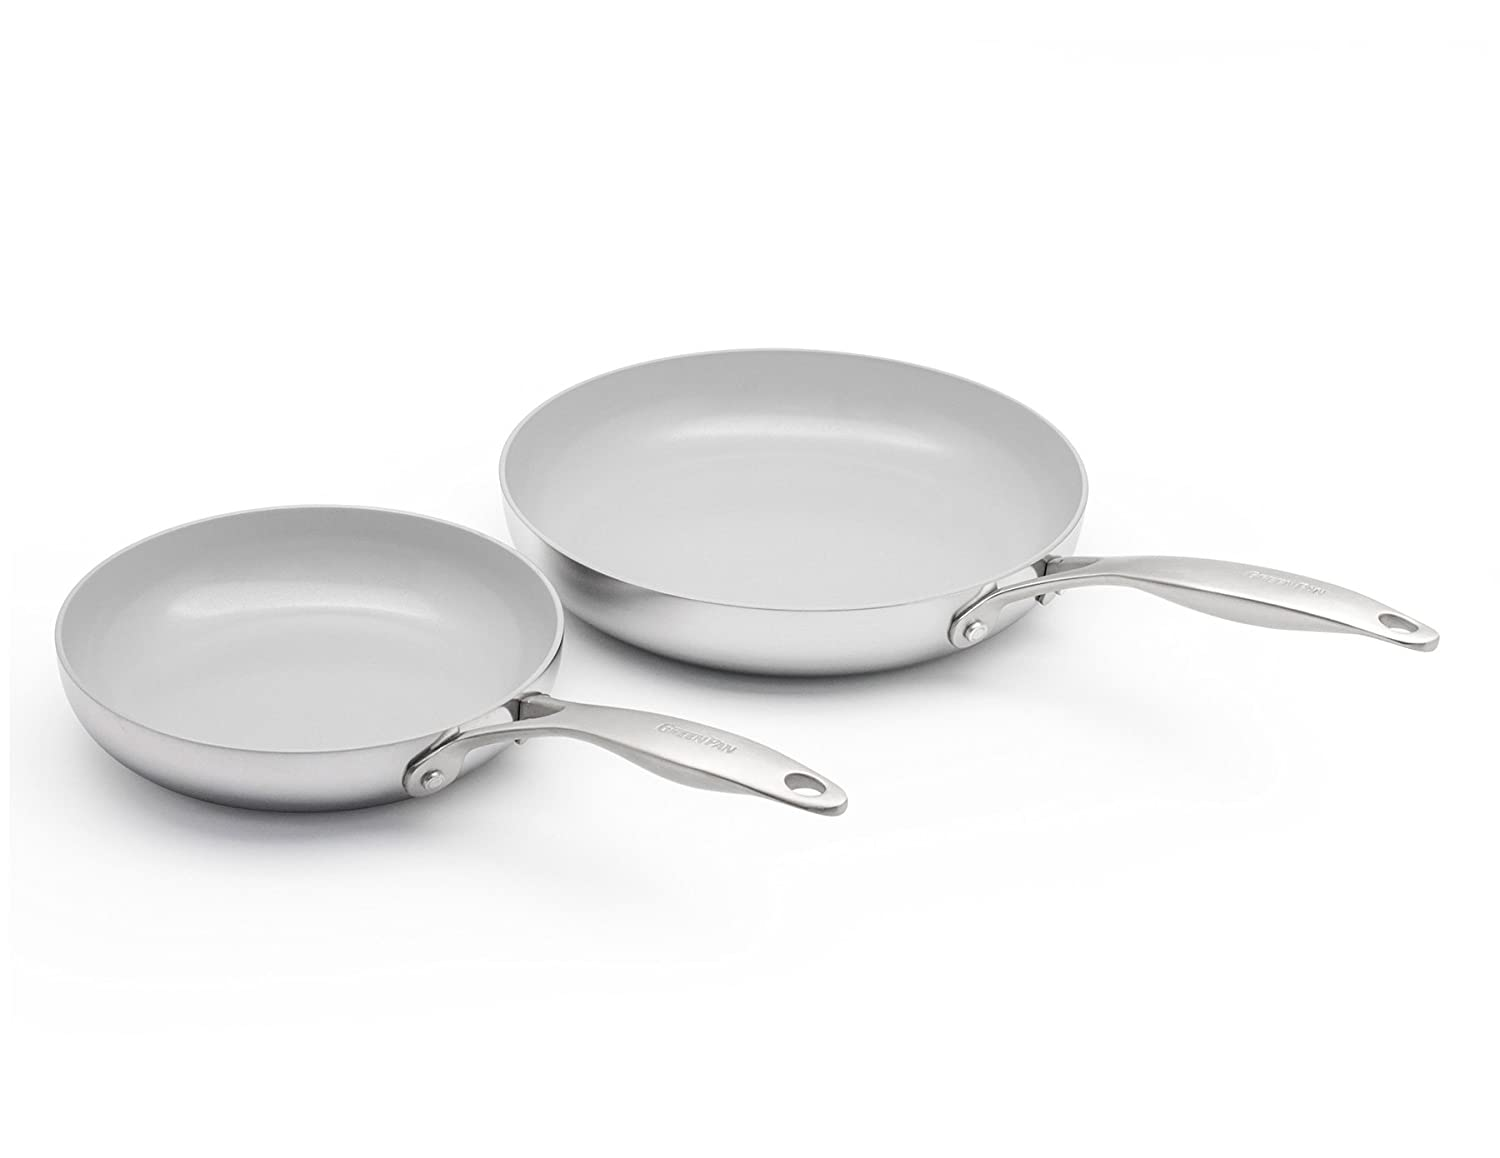 GreenPan CC000016-001 Venice Pro Stainless Steel 100% Toxin-Free Healthy Ceramic Nonstick Metal Utensil/Dishwasher/Oven Safe 8 & 10-Inch Frypan Set, 2-Piece, Light Grey